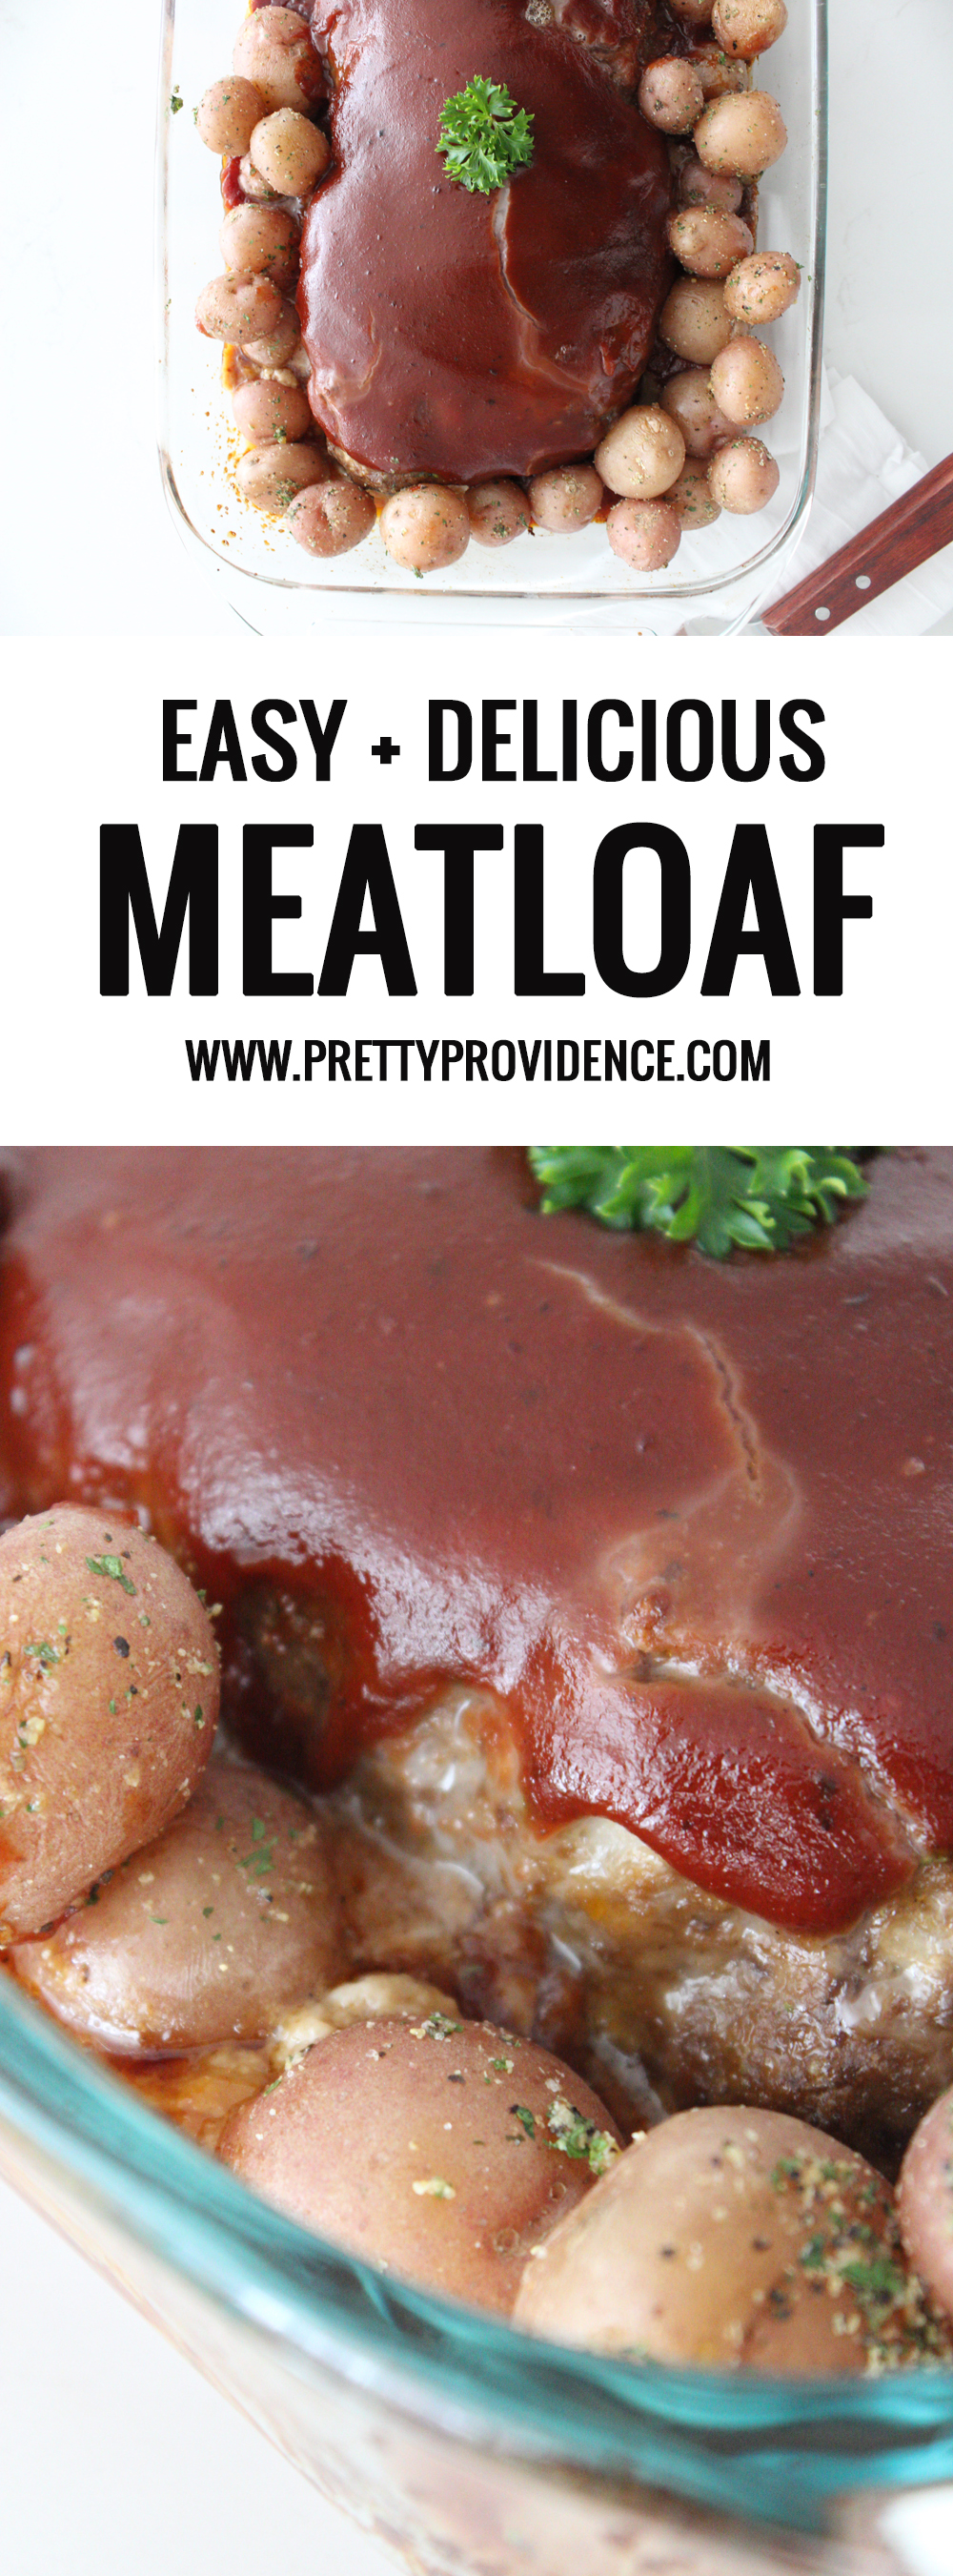 Meatloaf clipart easy Meatloaf Delicious and Print Easy